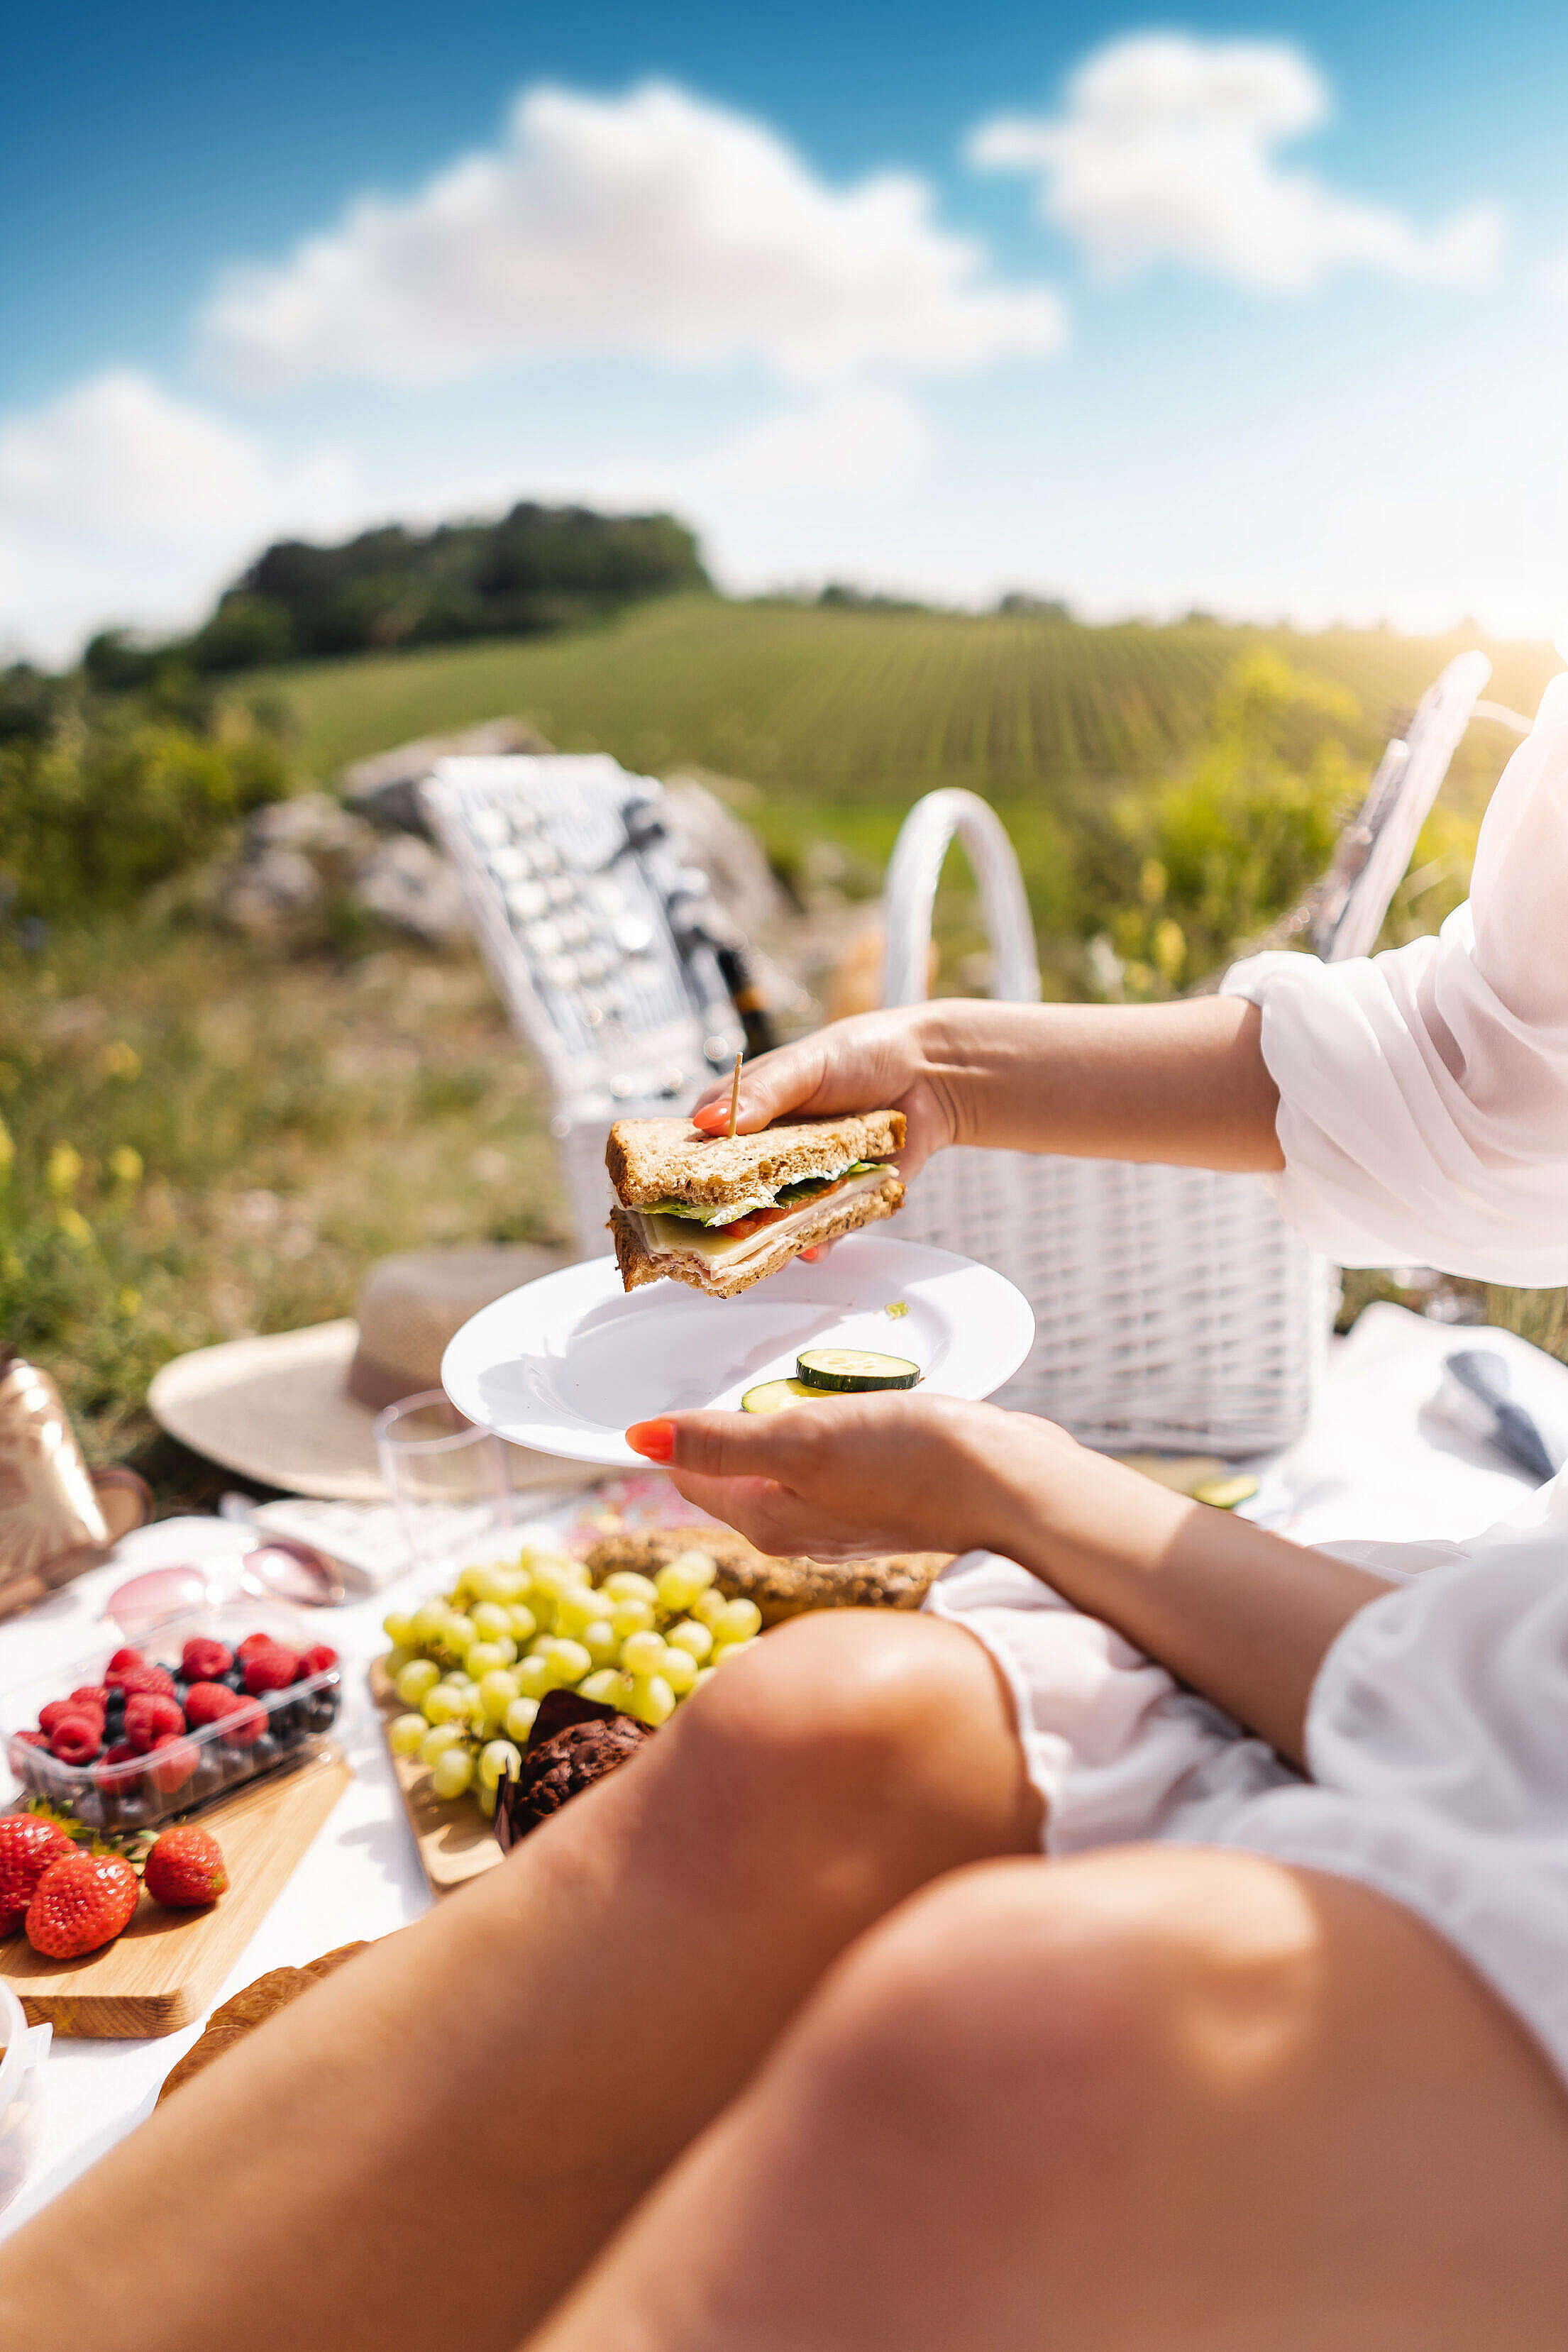 Eating a Sandwich on a Picnic Date Free Stock Photo